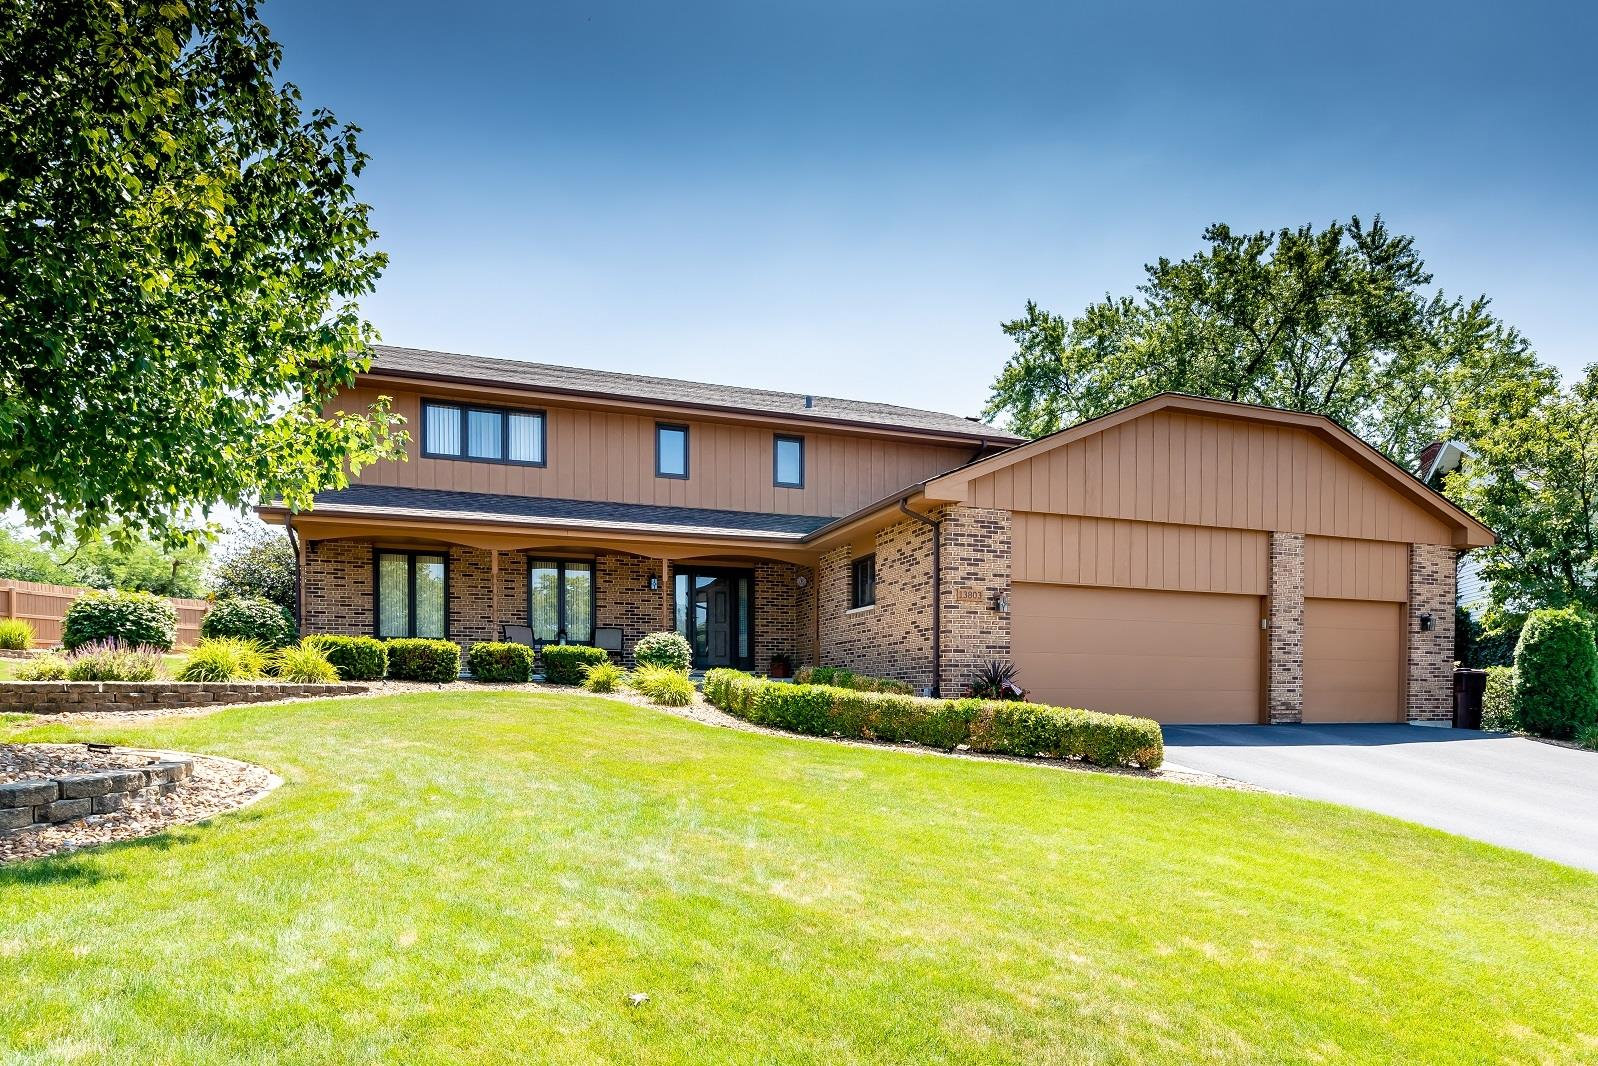 13803 82nd Place, Orland Park, IL 60462 - #: 10821645